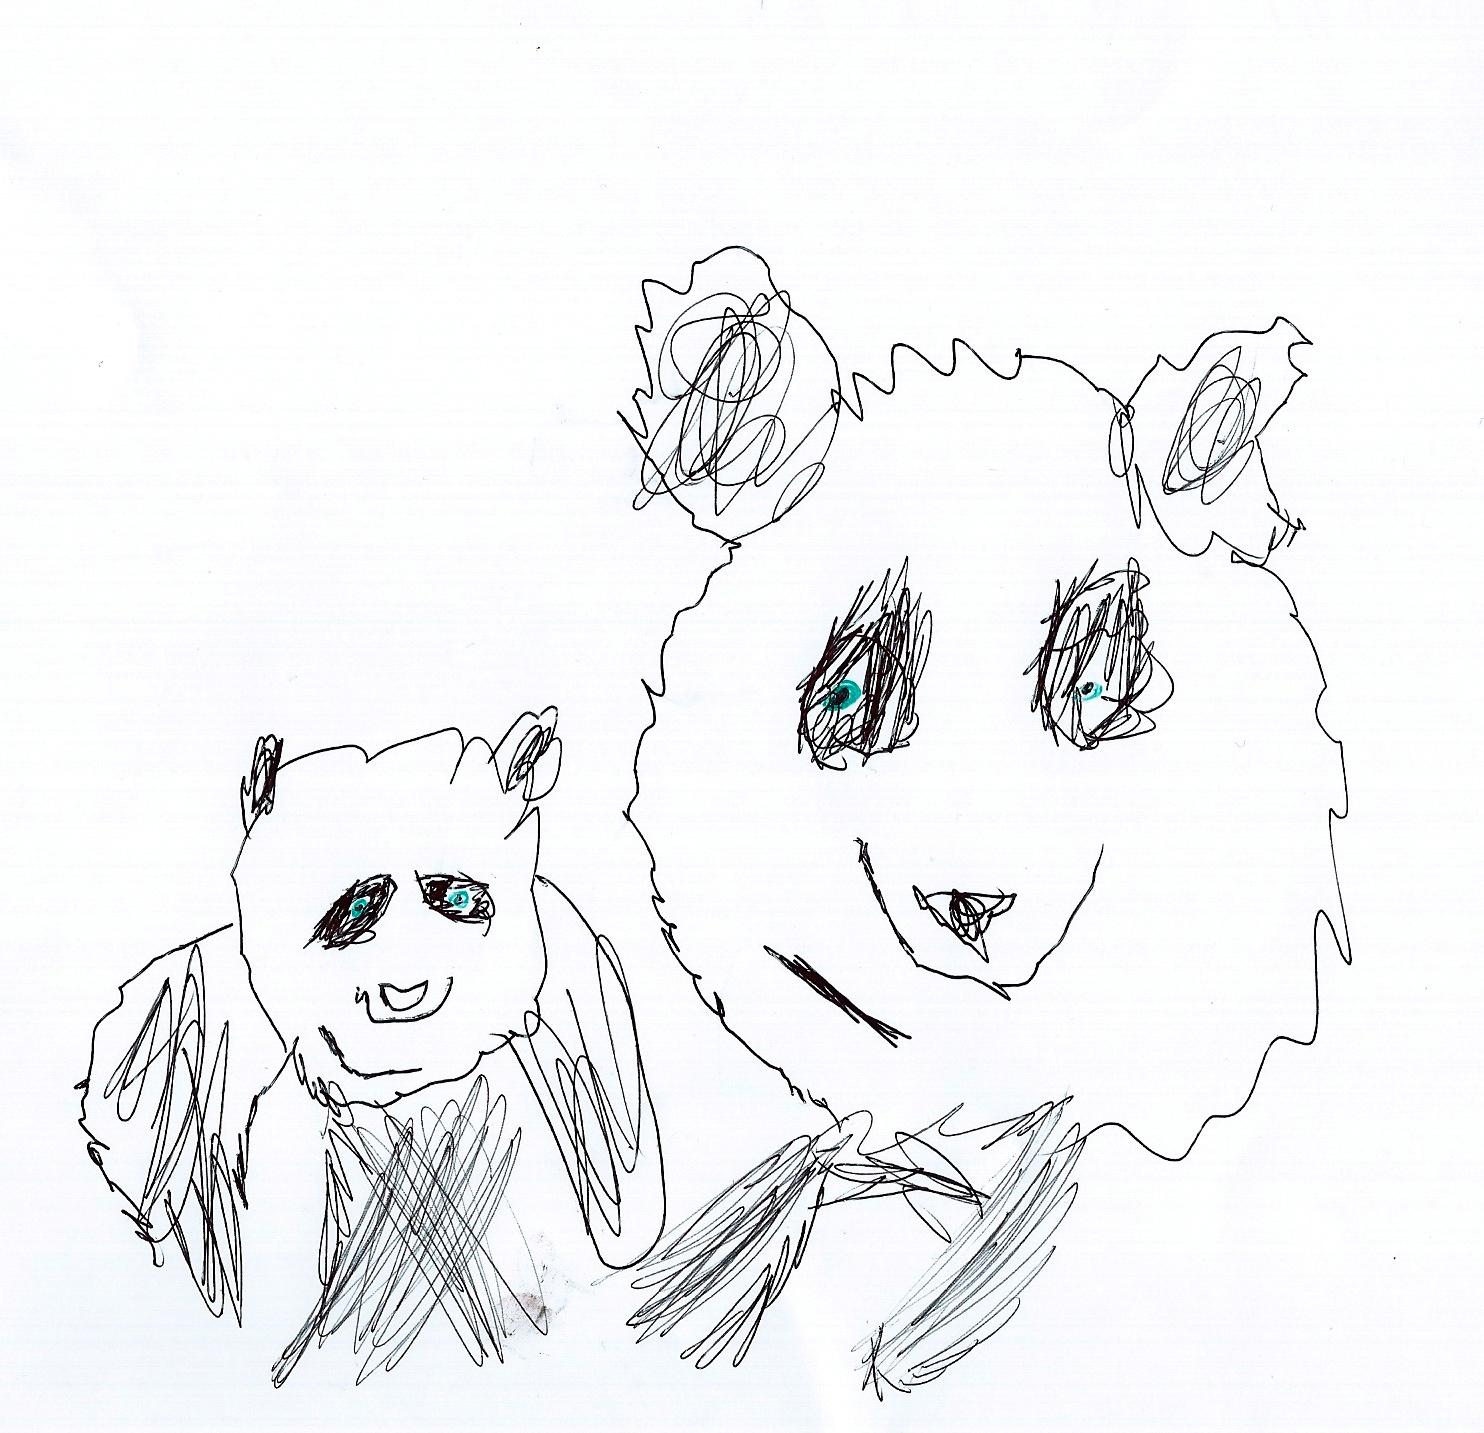 'Drawing for Endangered Species Workshops', and the